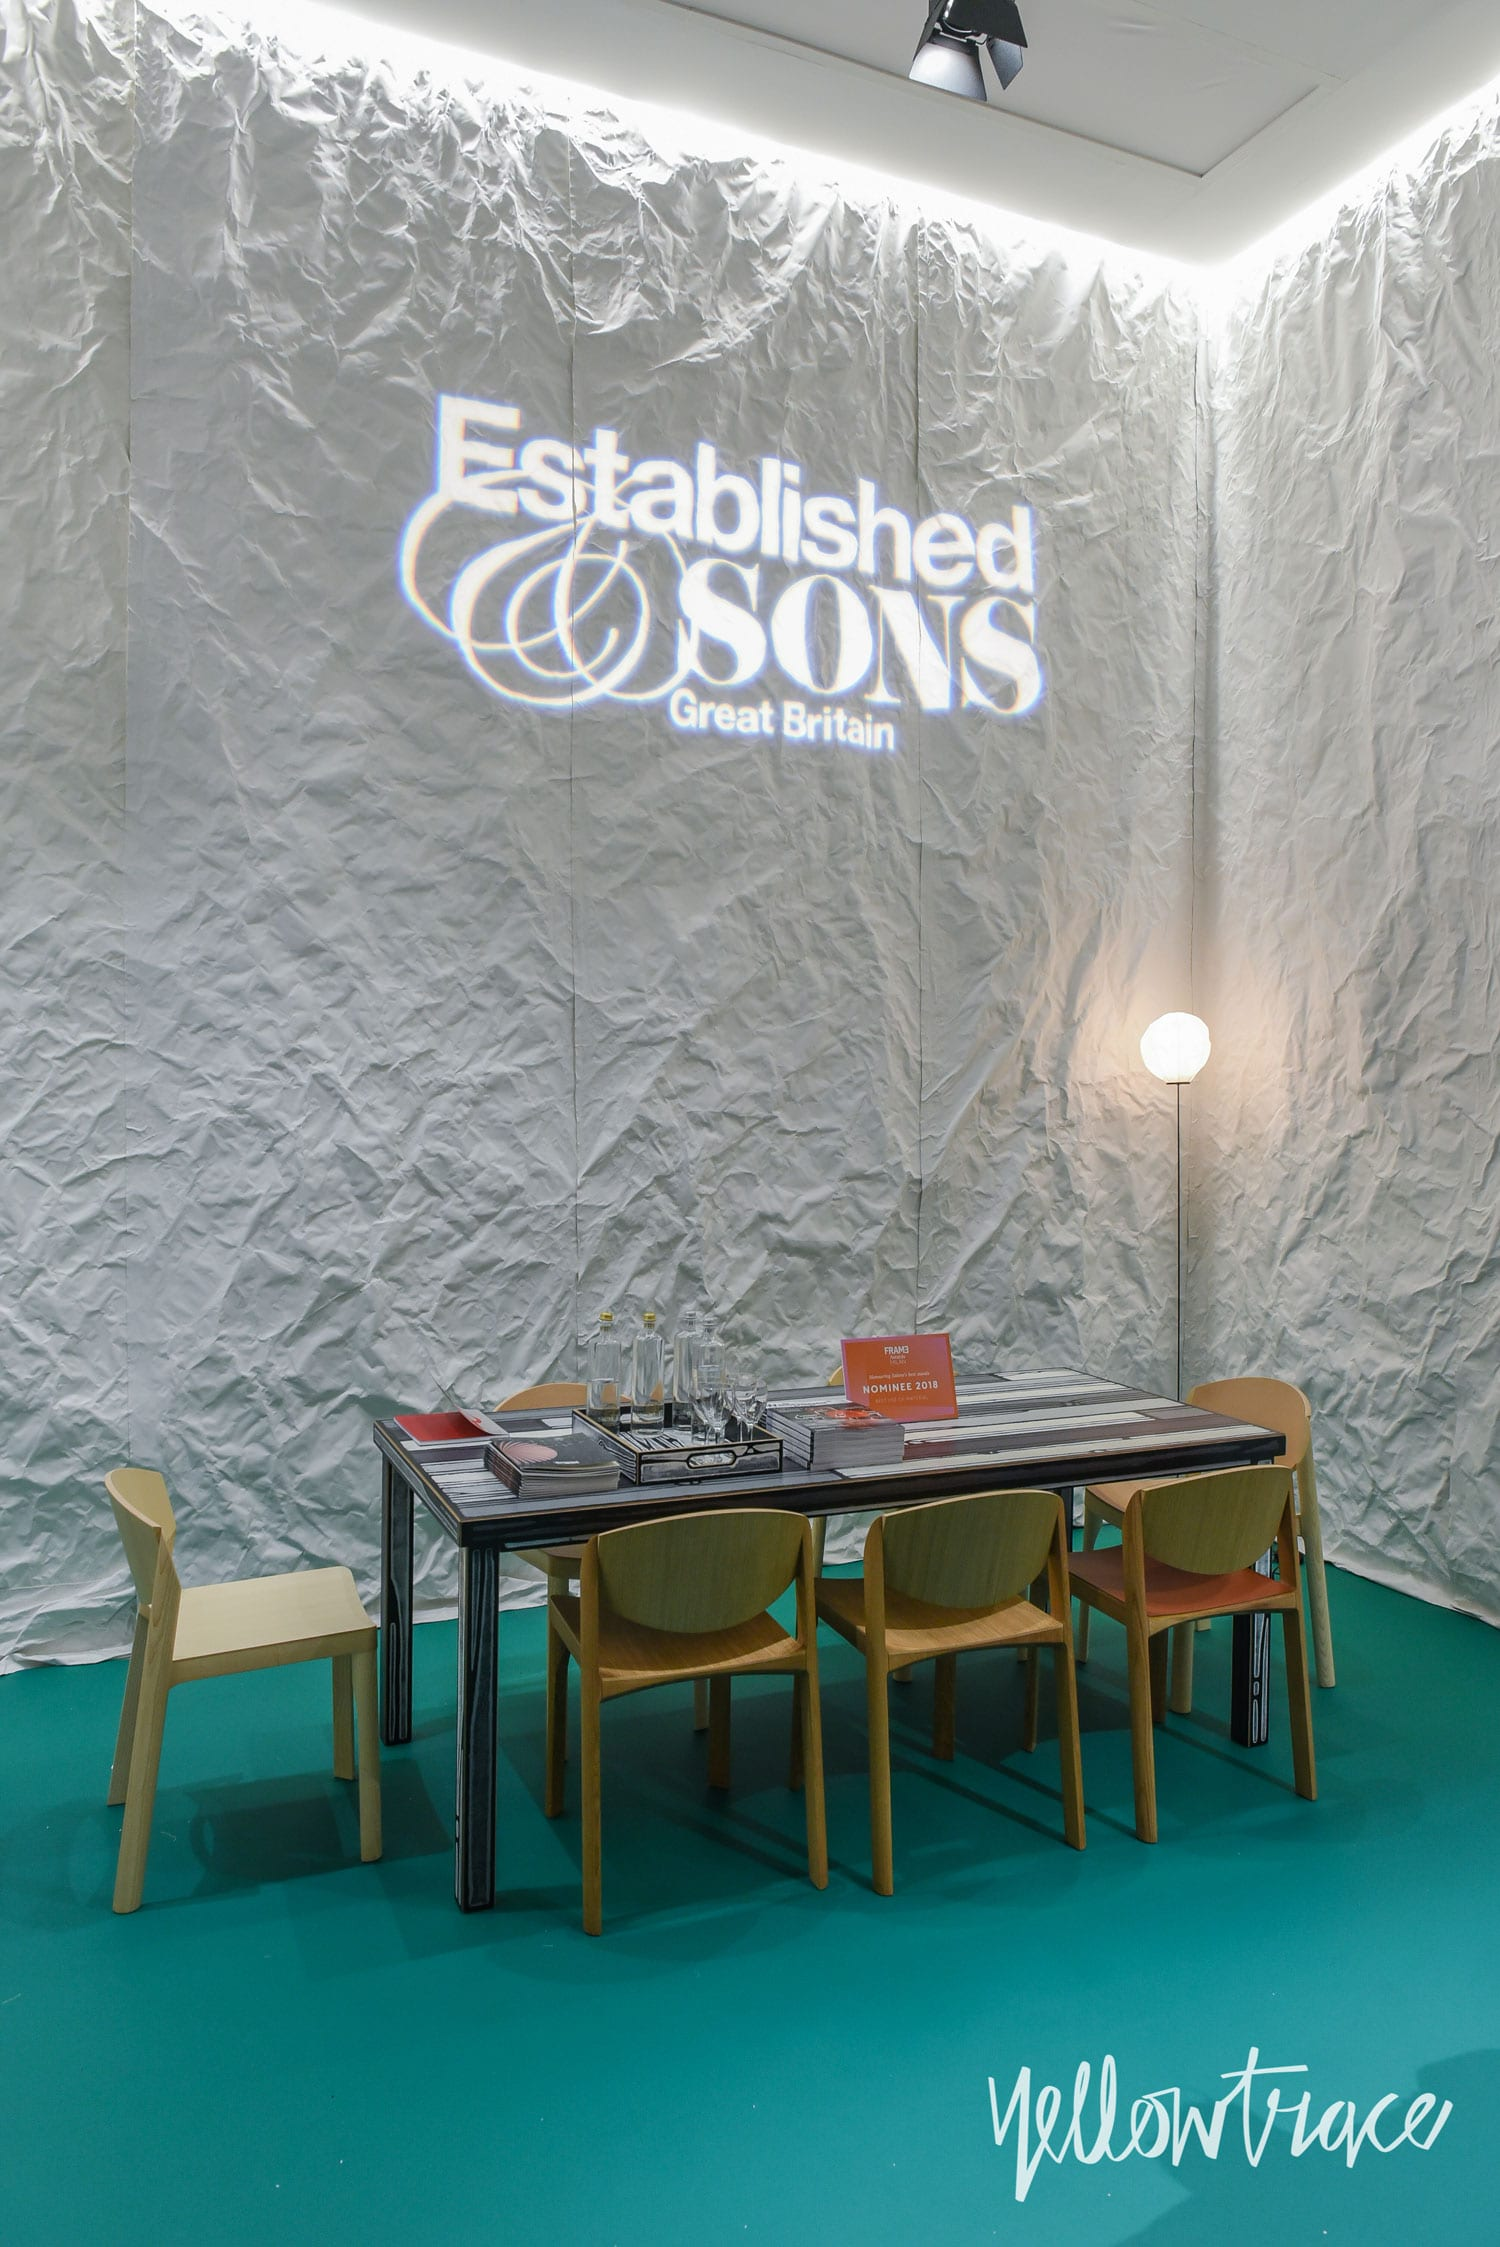 Milan Design Week 2018 Highlights, Established & Sons Stand at Salone del Mobile 2018. Photo © Nick Hughes | #Milantrace2018